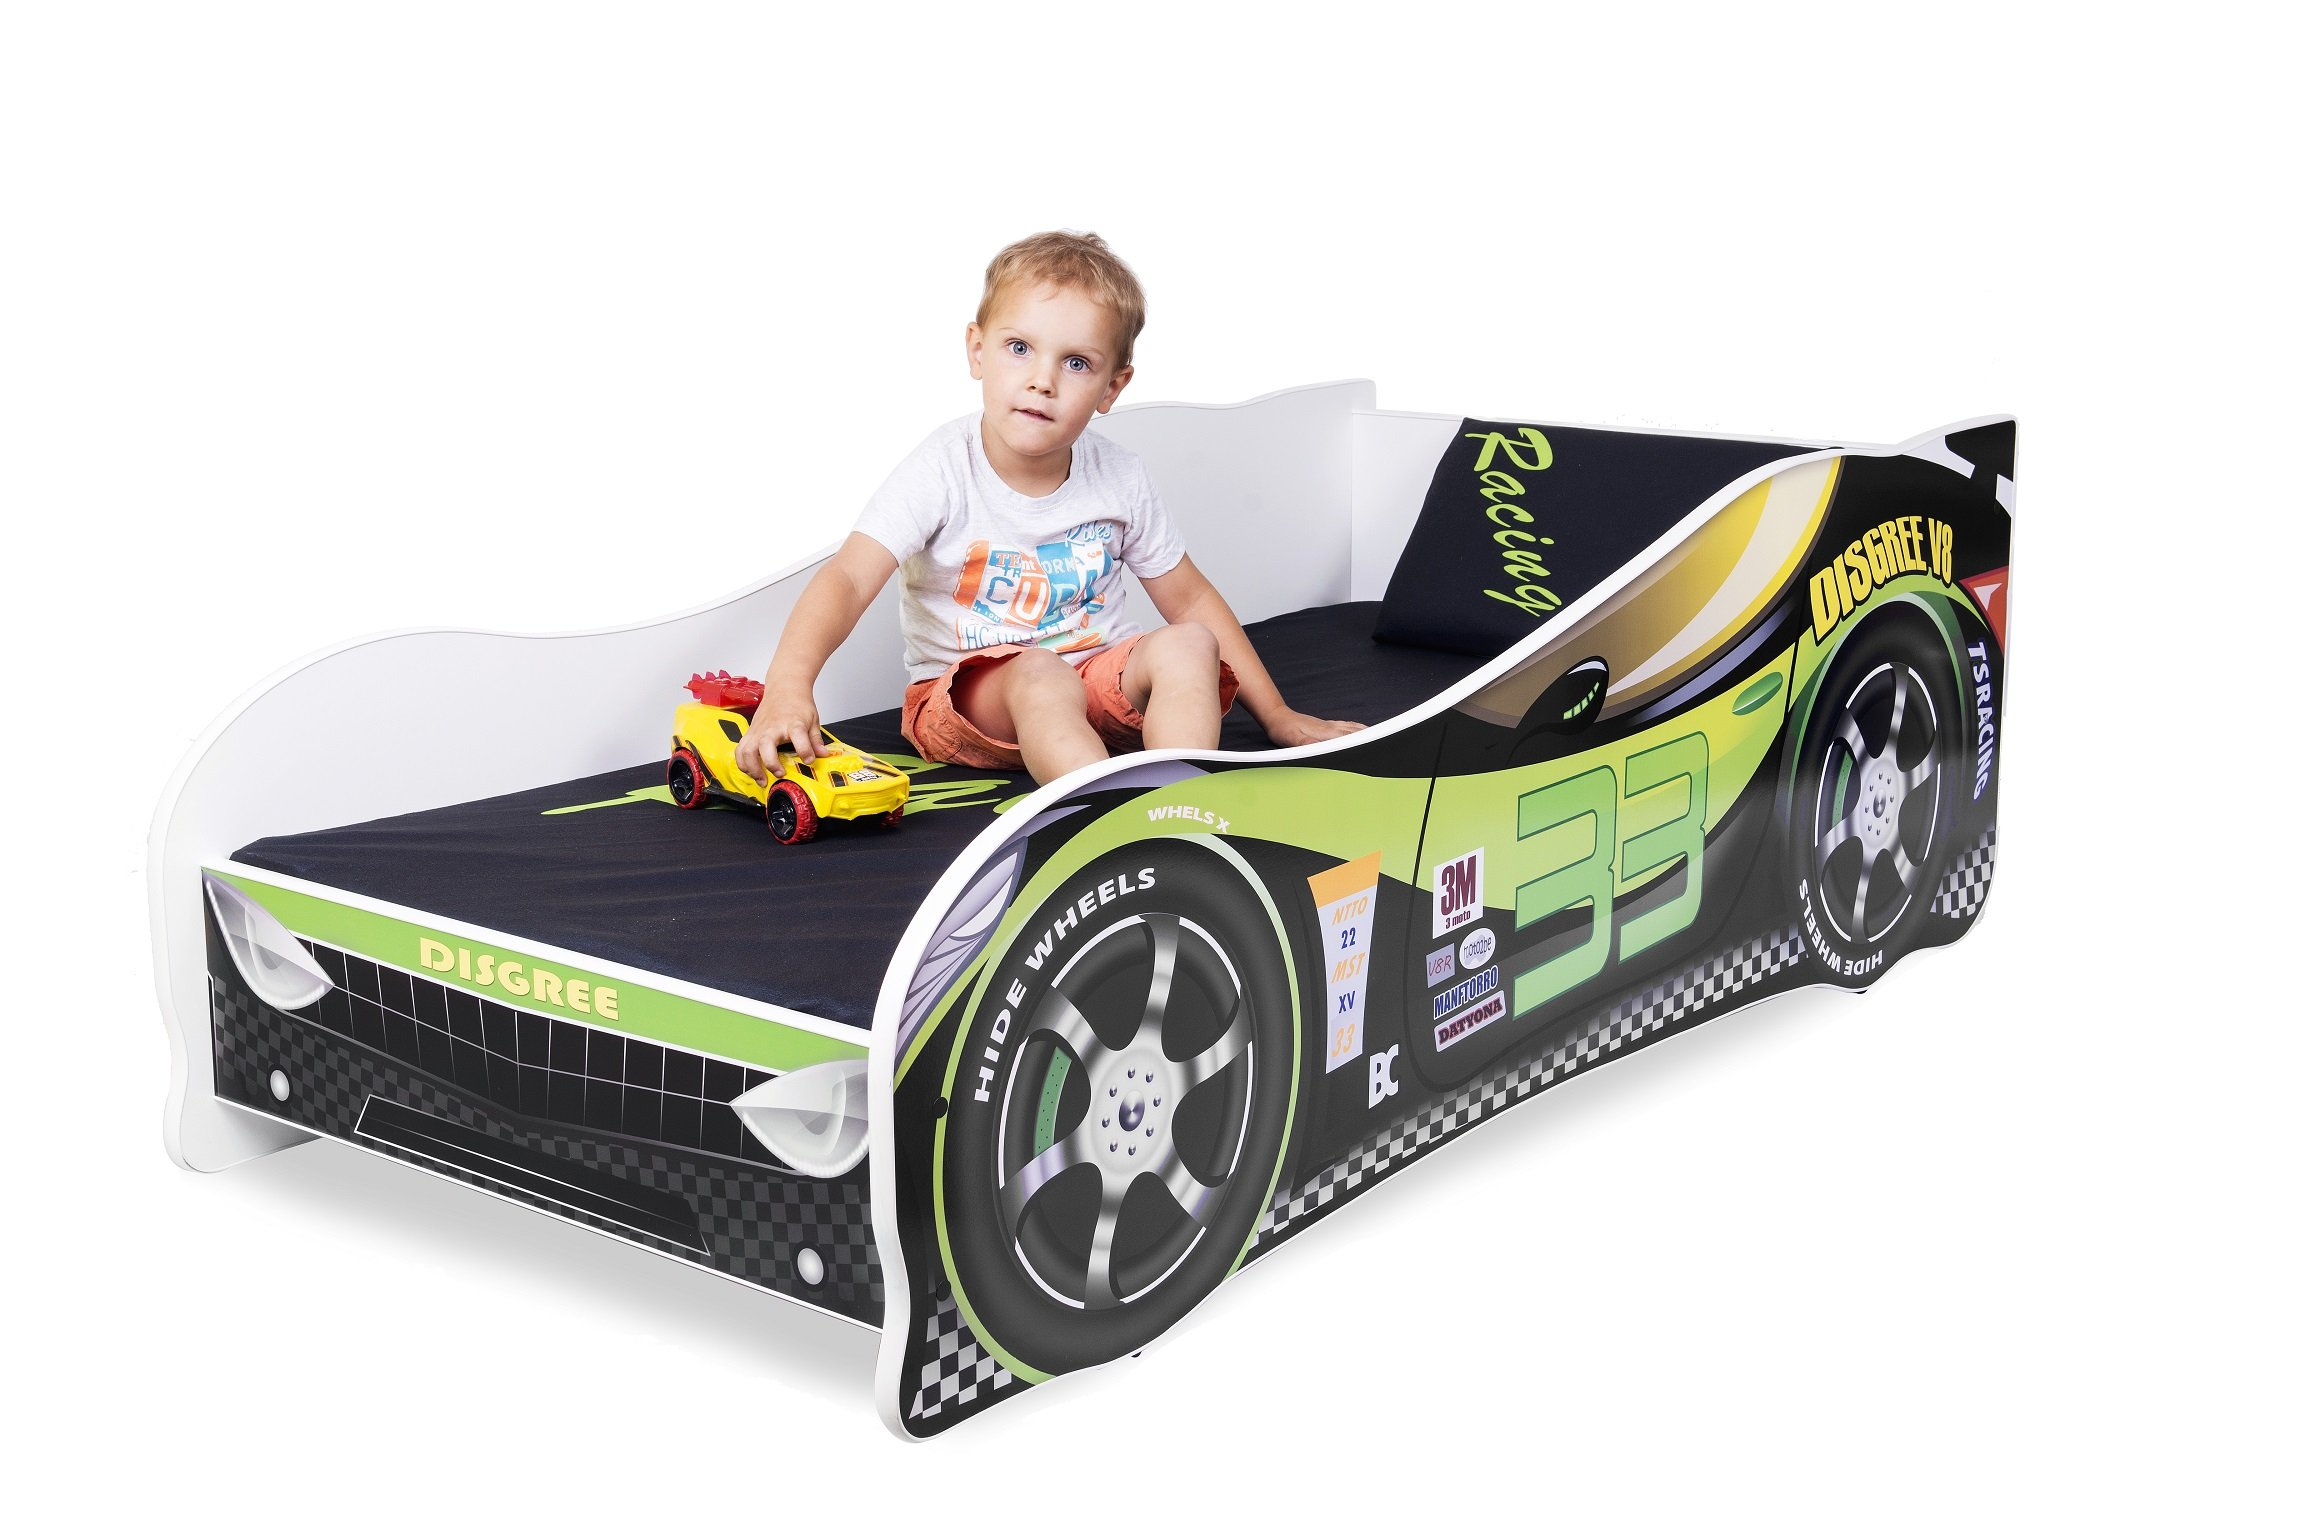 Sale +++ The Best Quality Baby Kids Bed Toddler Car Junior Bed with Mattress 140 x 70 cm 160 x 80 cm 180 x 80 cm (140x70cm Untill 5 Jears, Green) Nobiko Kids Bed + Foam Mattress in 3 Sizes: 140 x 70 cm untill 5 jears 160 x 80 cm untill 8 jears 180 x 80 cm untill 12 jears Greengard Gold - Product certified for law chemical emissions Ecologo - Product certified for reduced environmental impact 6